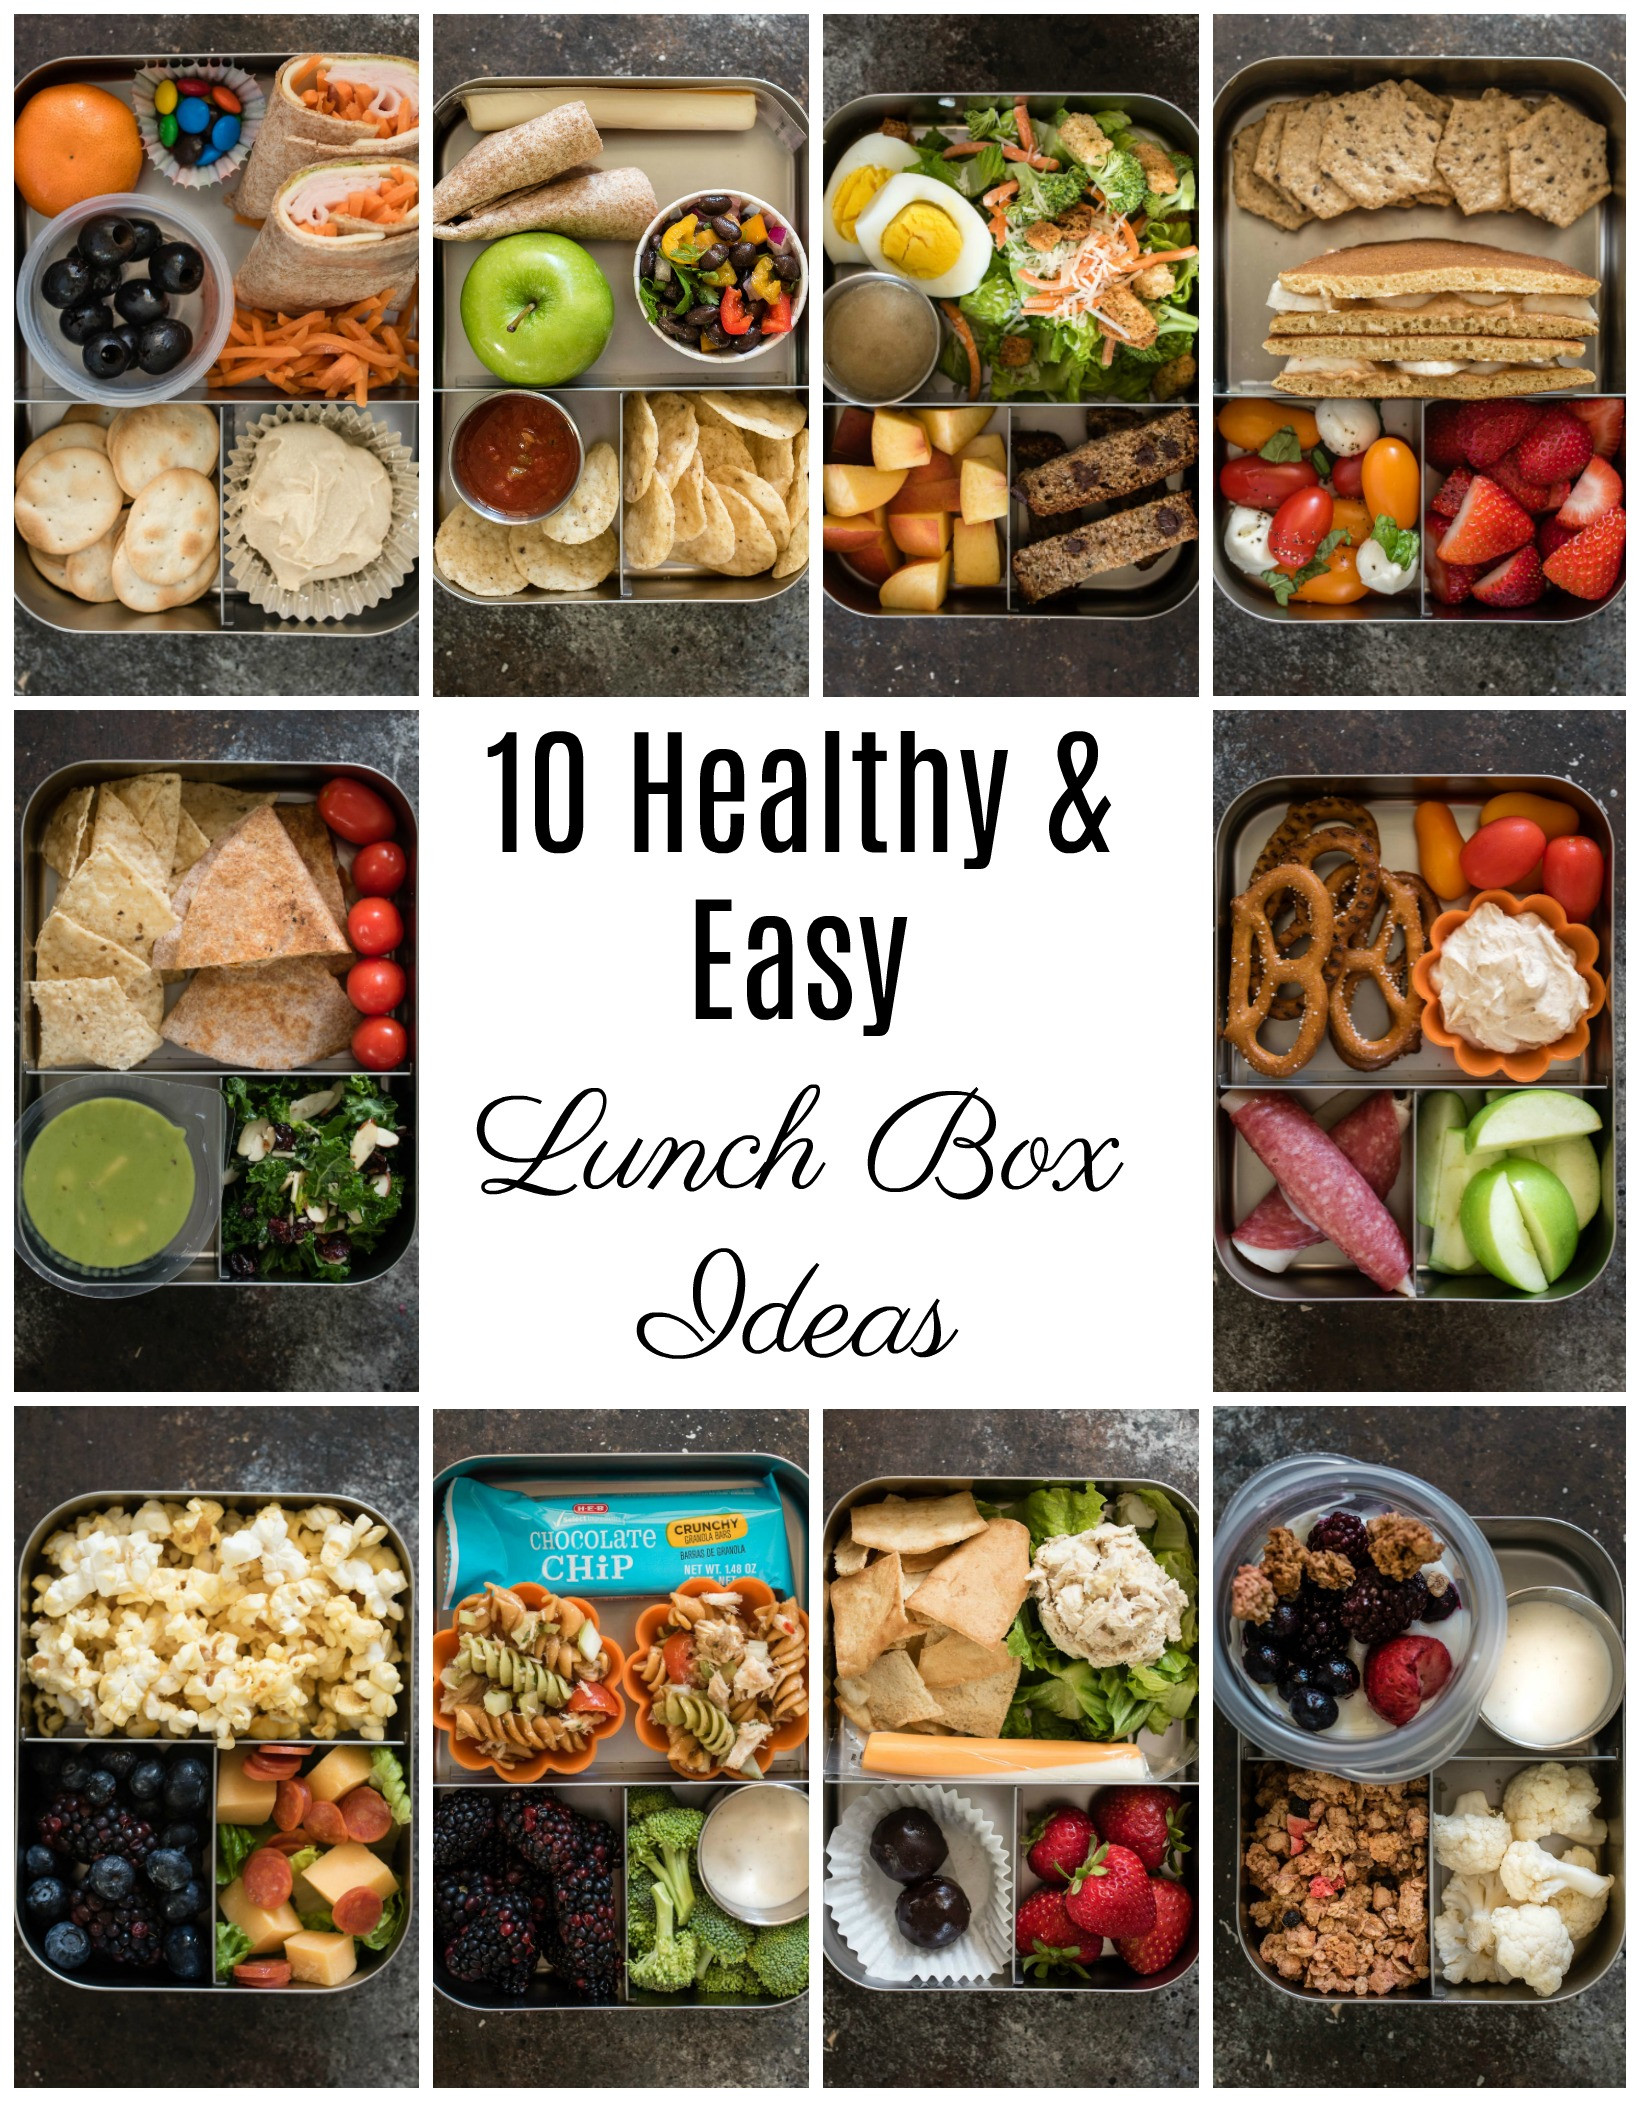 Best Healthy Lunches  10 Healthy Lunch Box Ideas